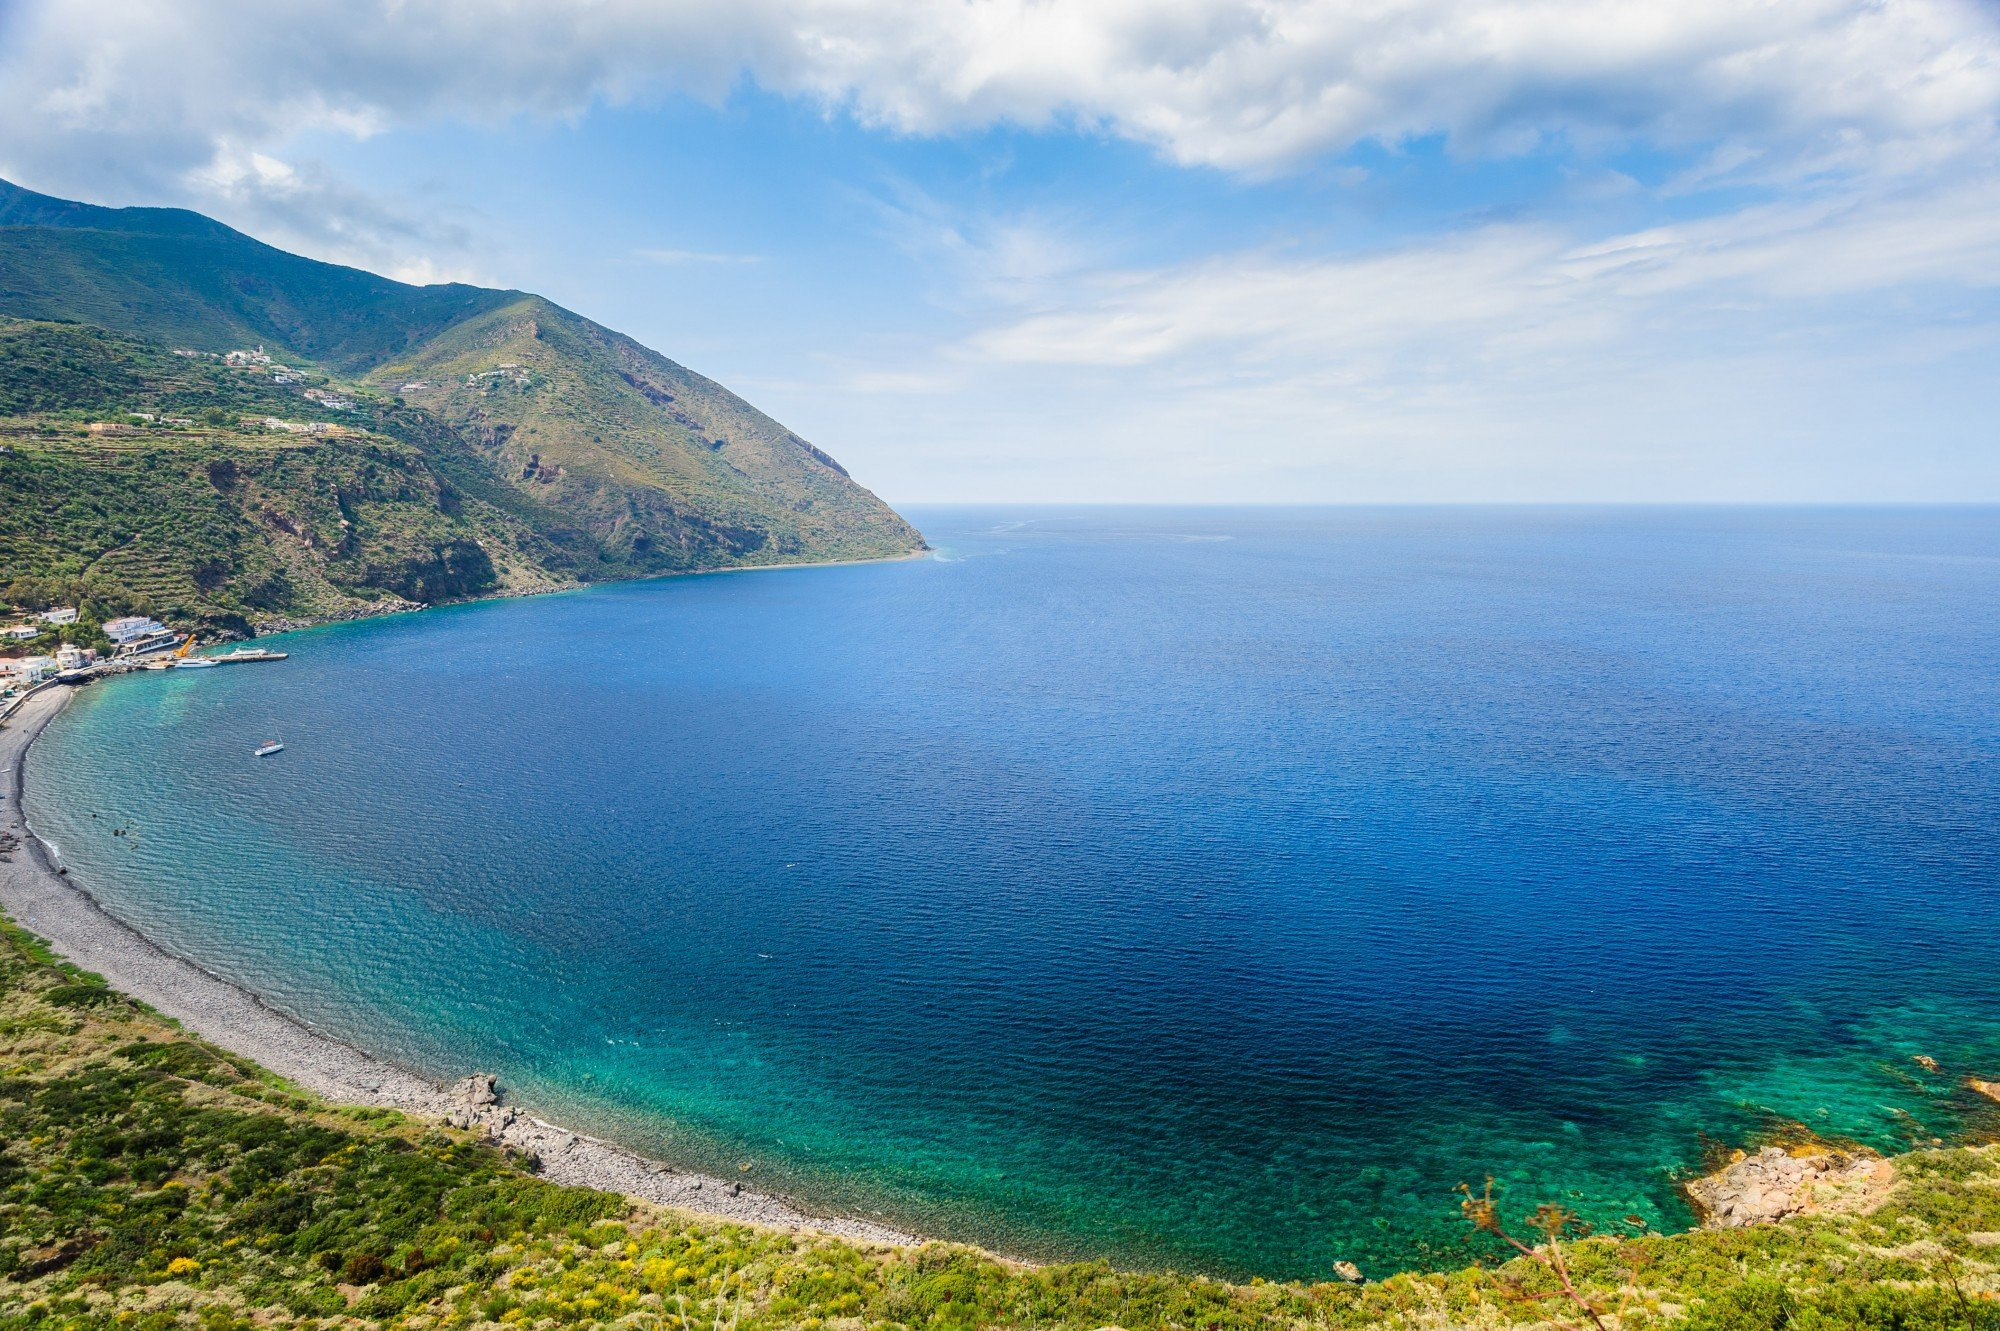 sicily-yacht-charter-aeolian-islands-itinerary-lipari-cliffs